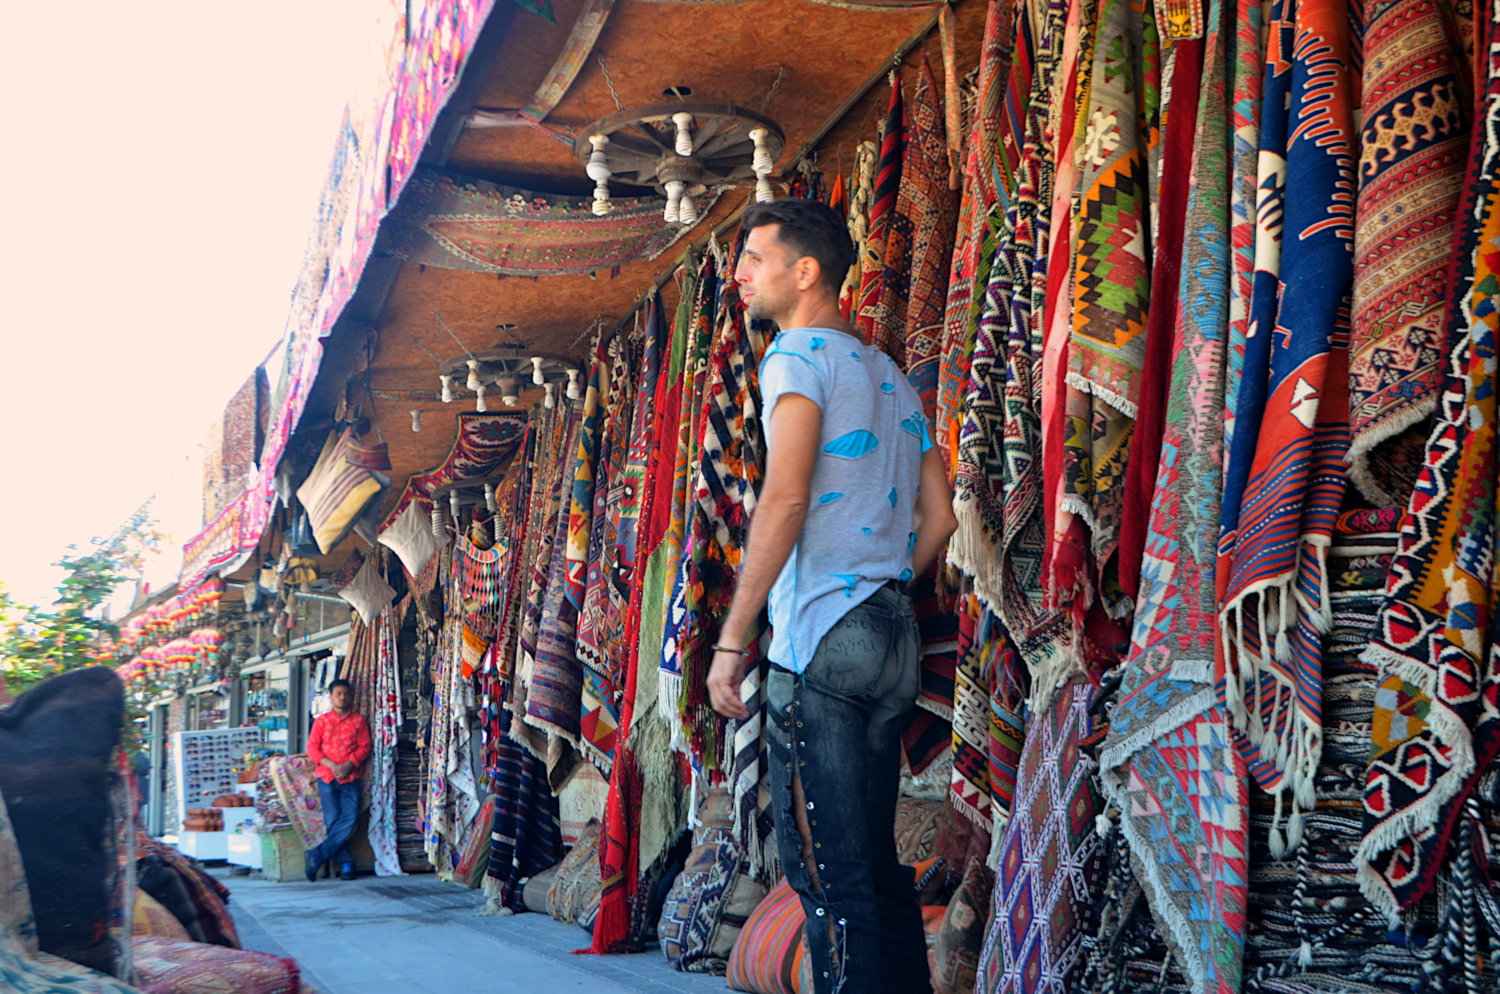 The handmade textiles in Turkey are among the world's finest artisanal legacies.